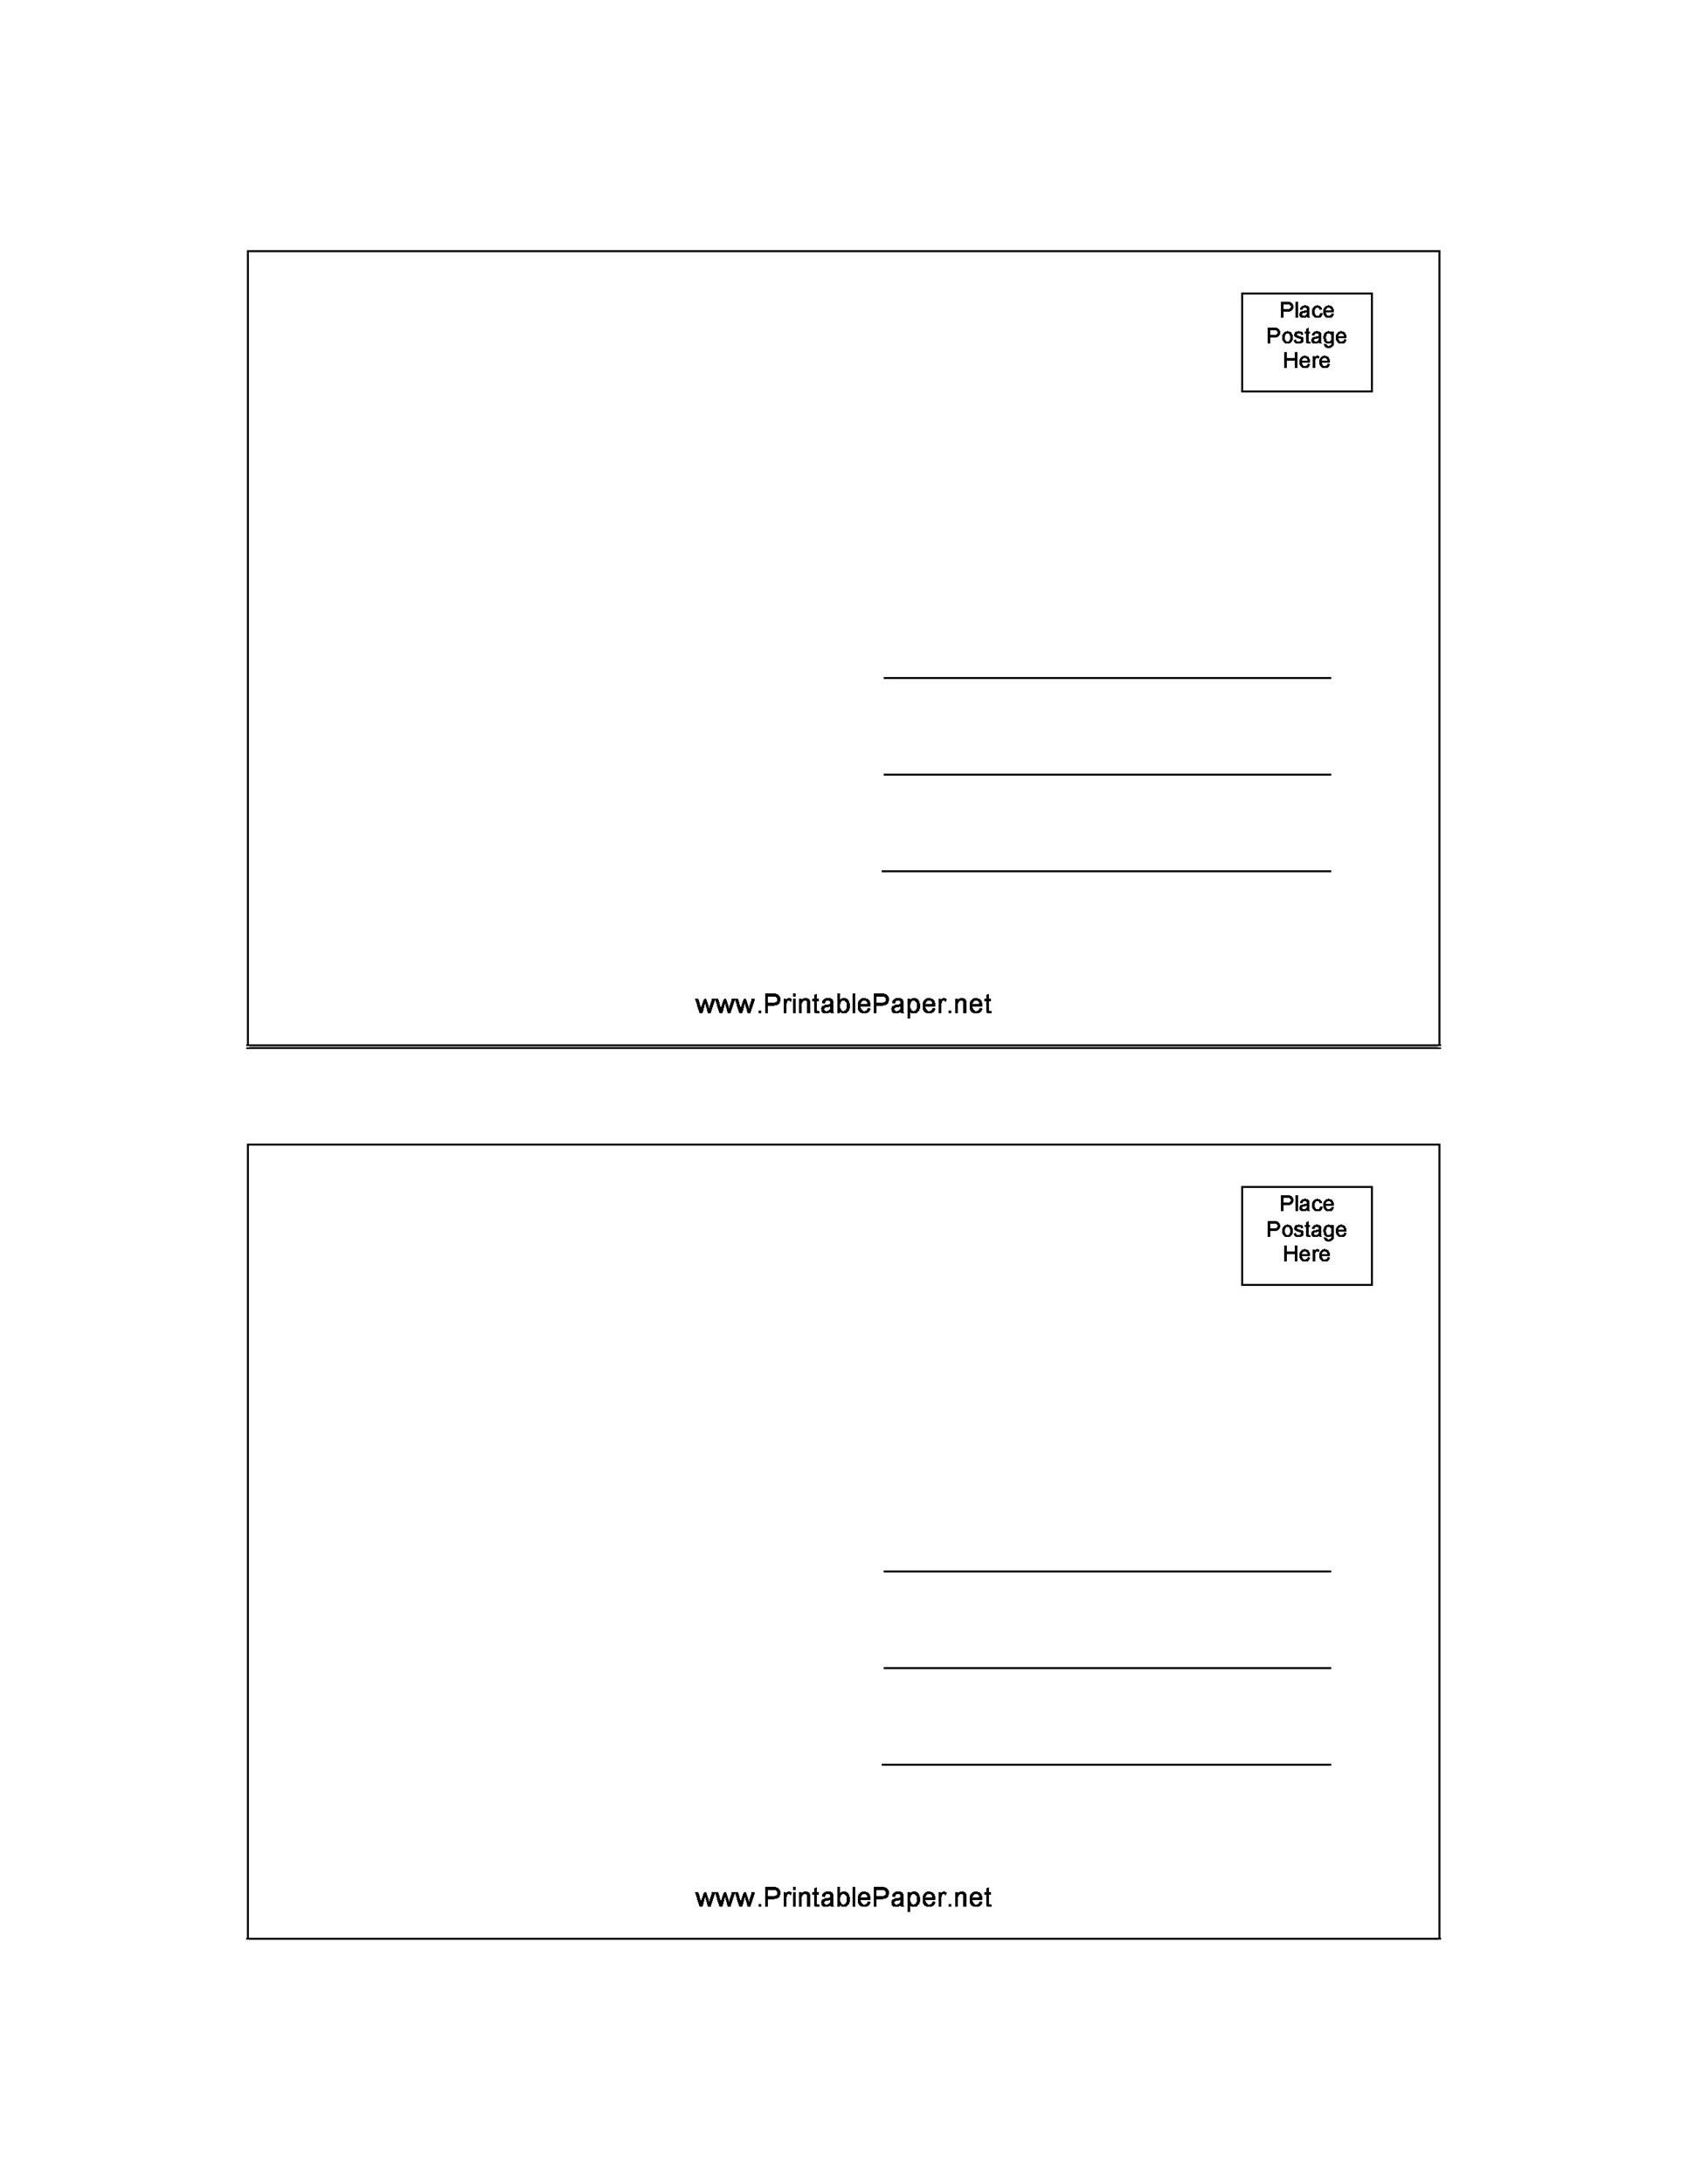 007 Amazing Free Postcard Template Download Microsoft Word High Definition Full